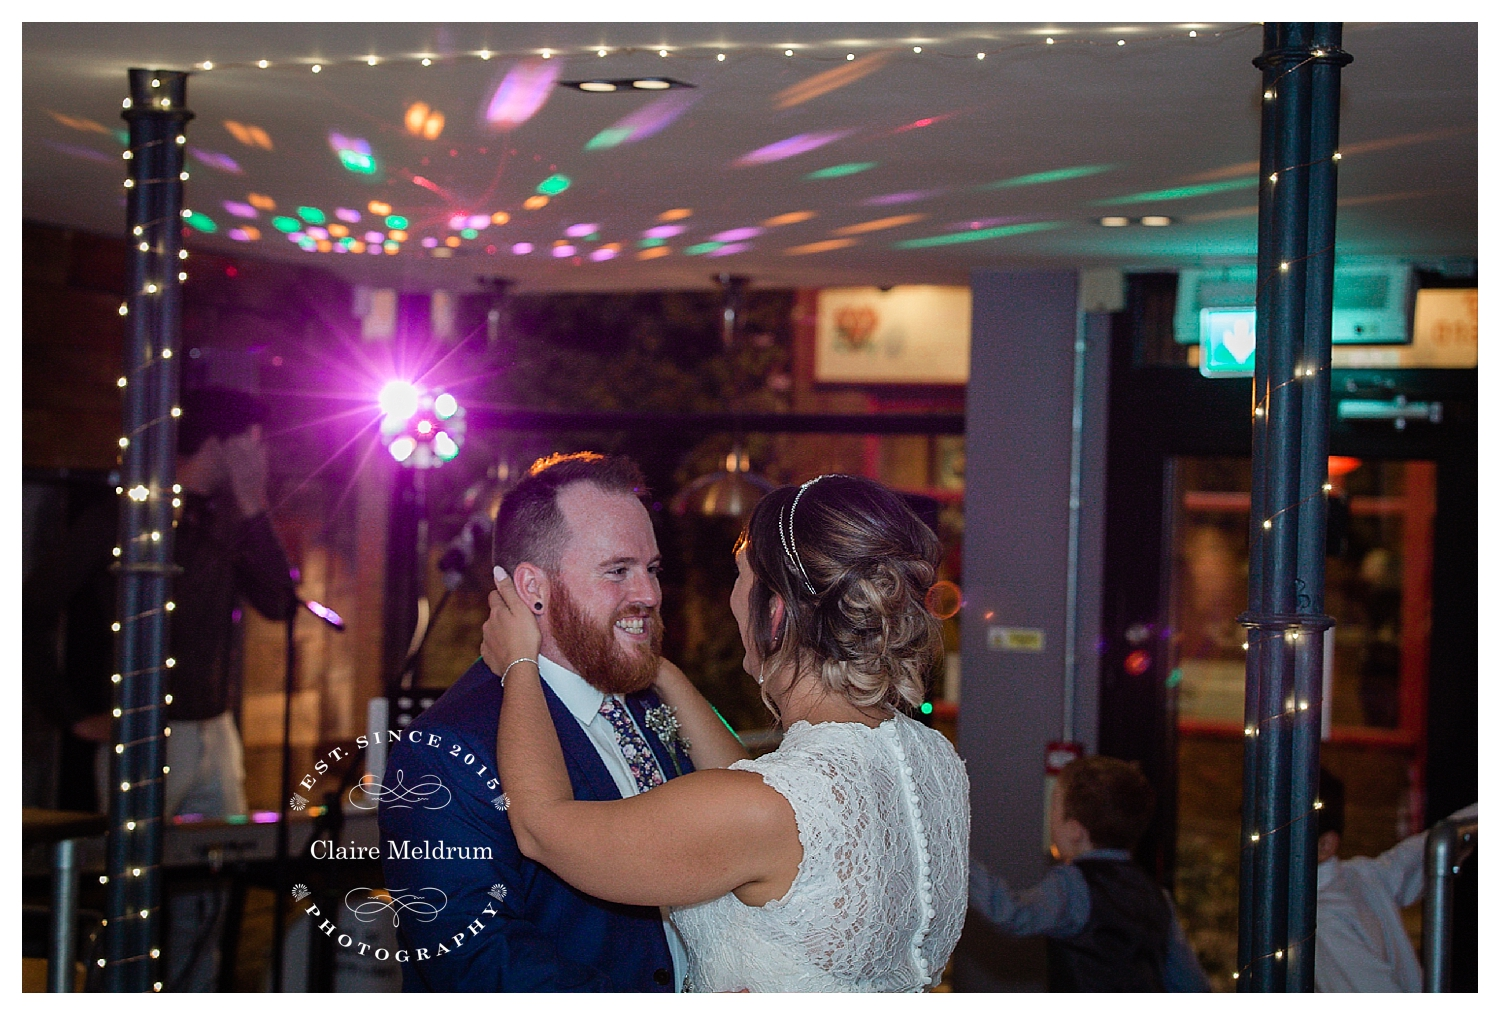 Bride and groom dancing at Bear Coffee, Claire Meldrum Photography